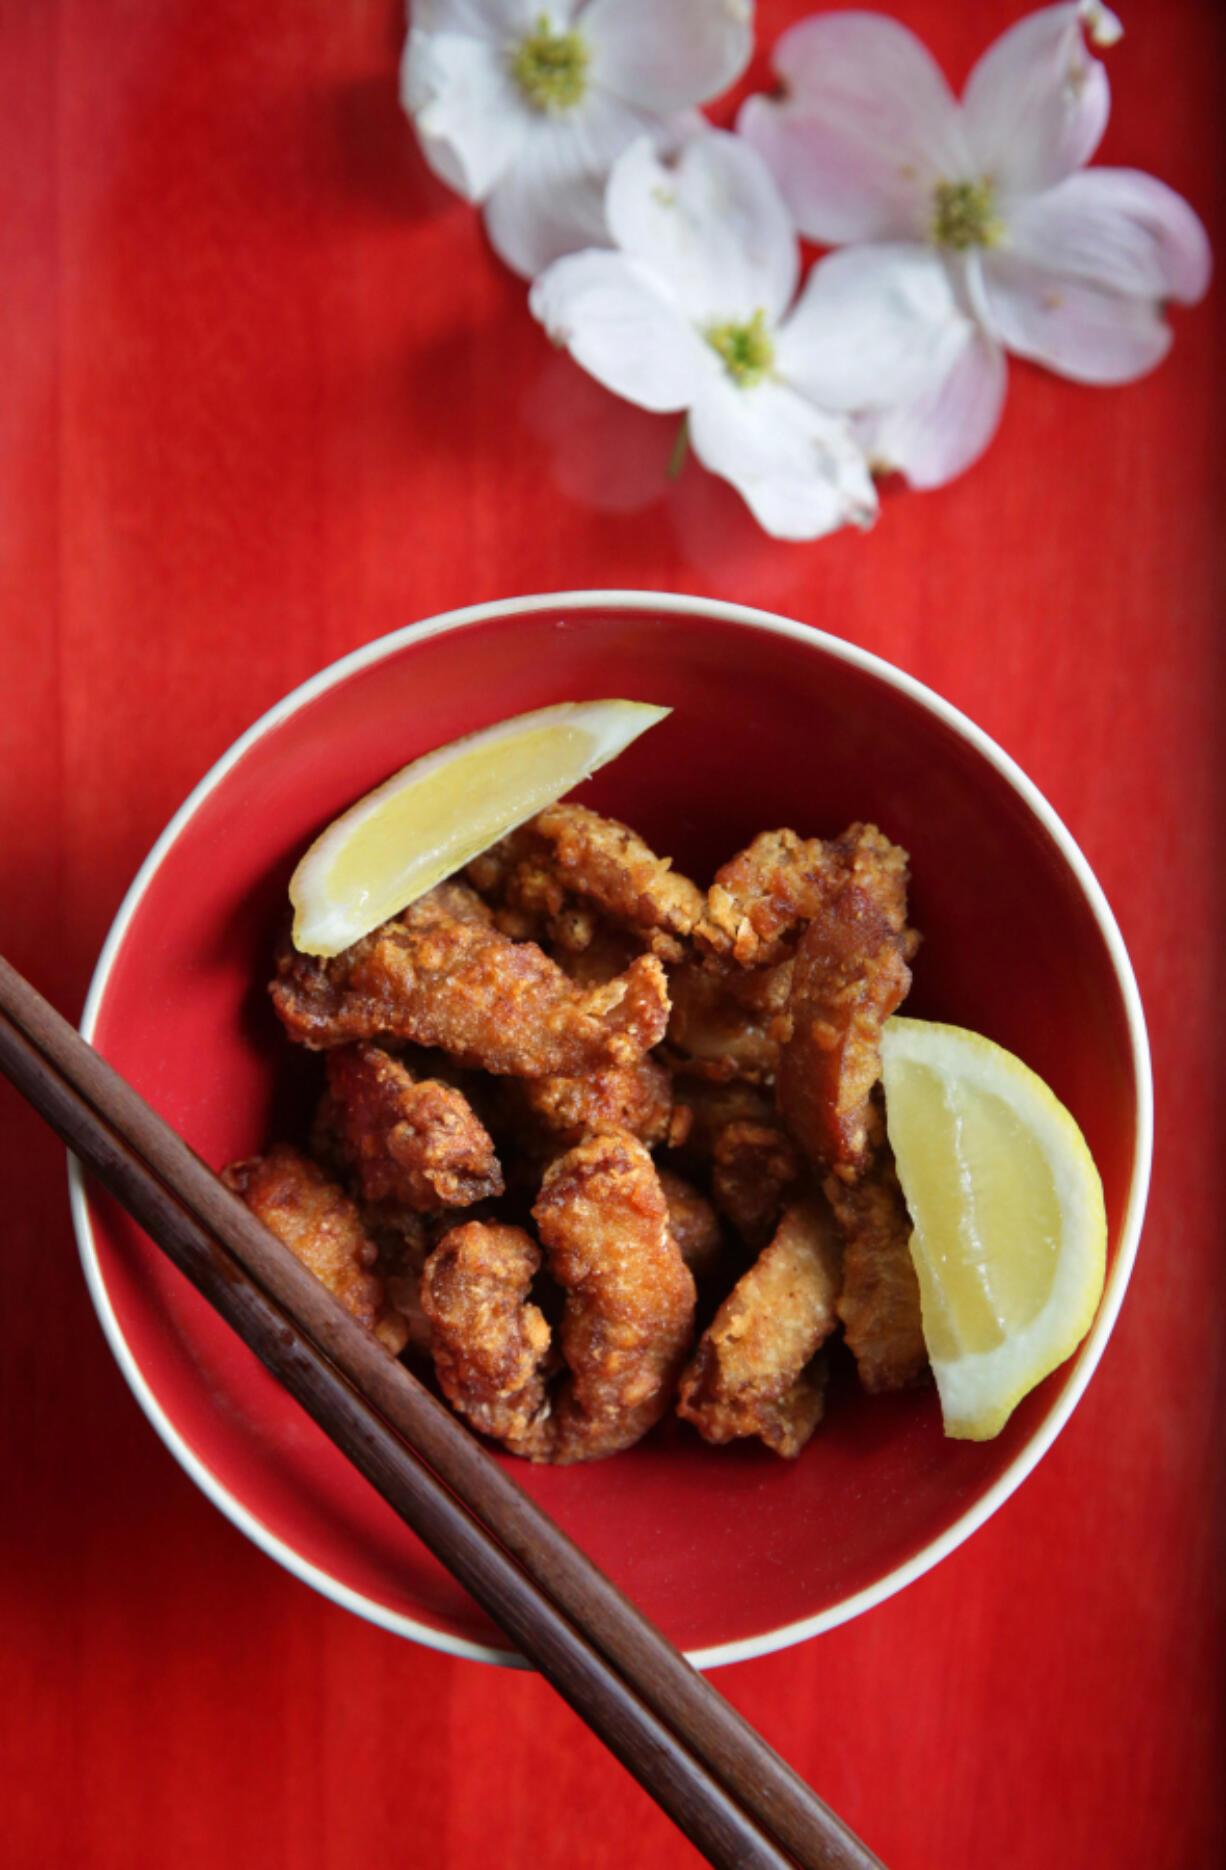 Karaage (Japanese fried chicken) (Photos by Hillary Levin/St.